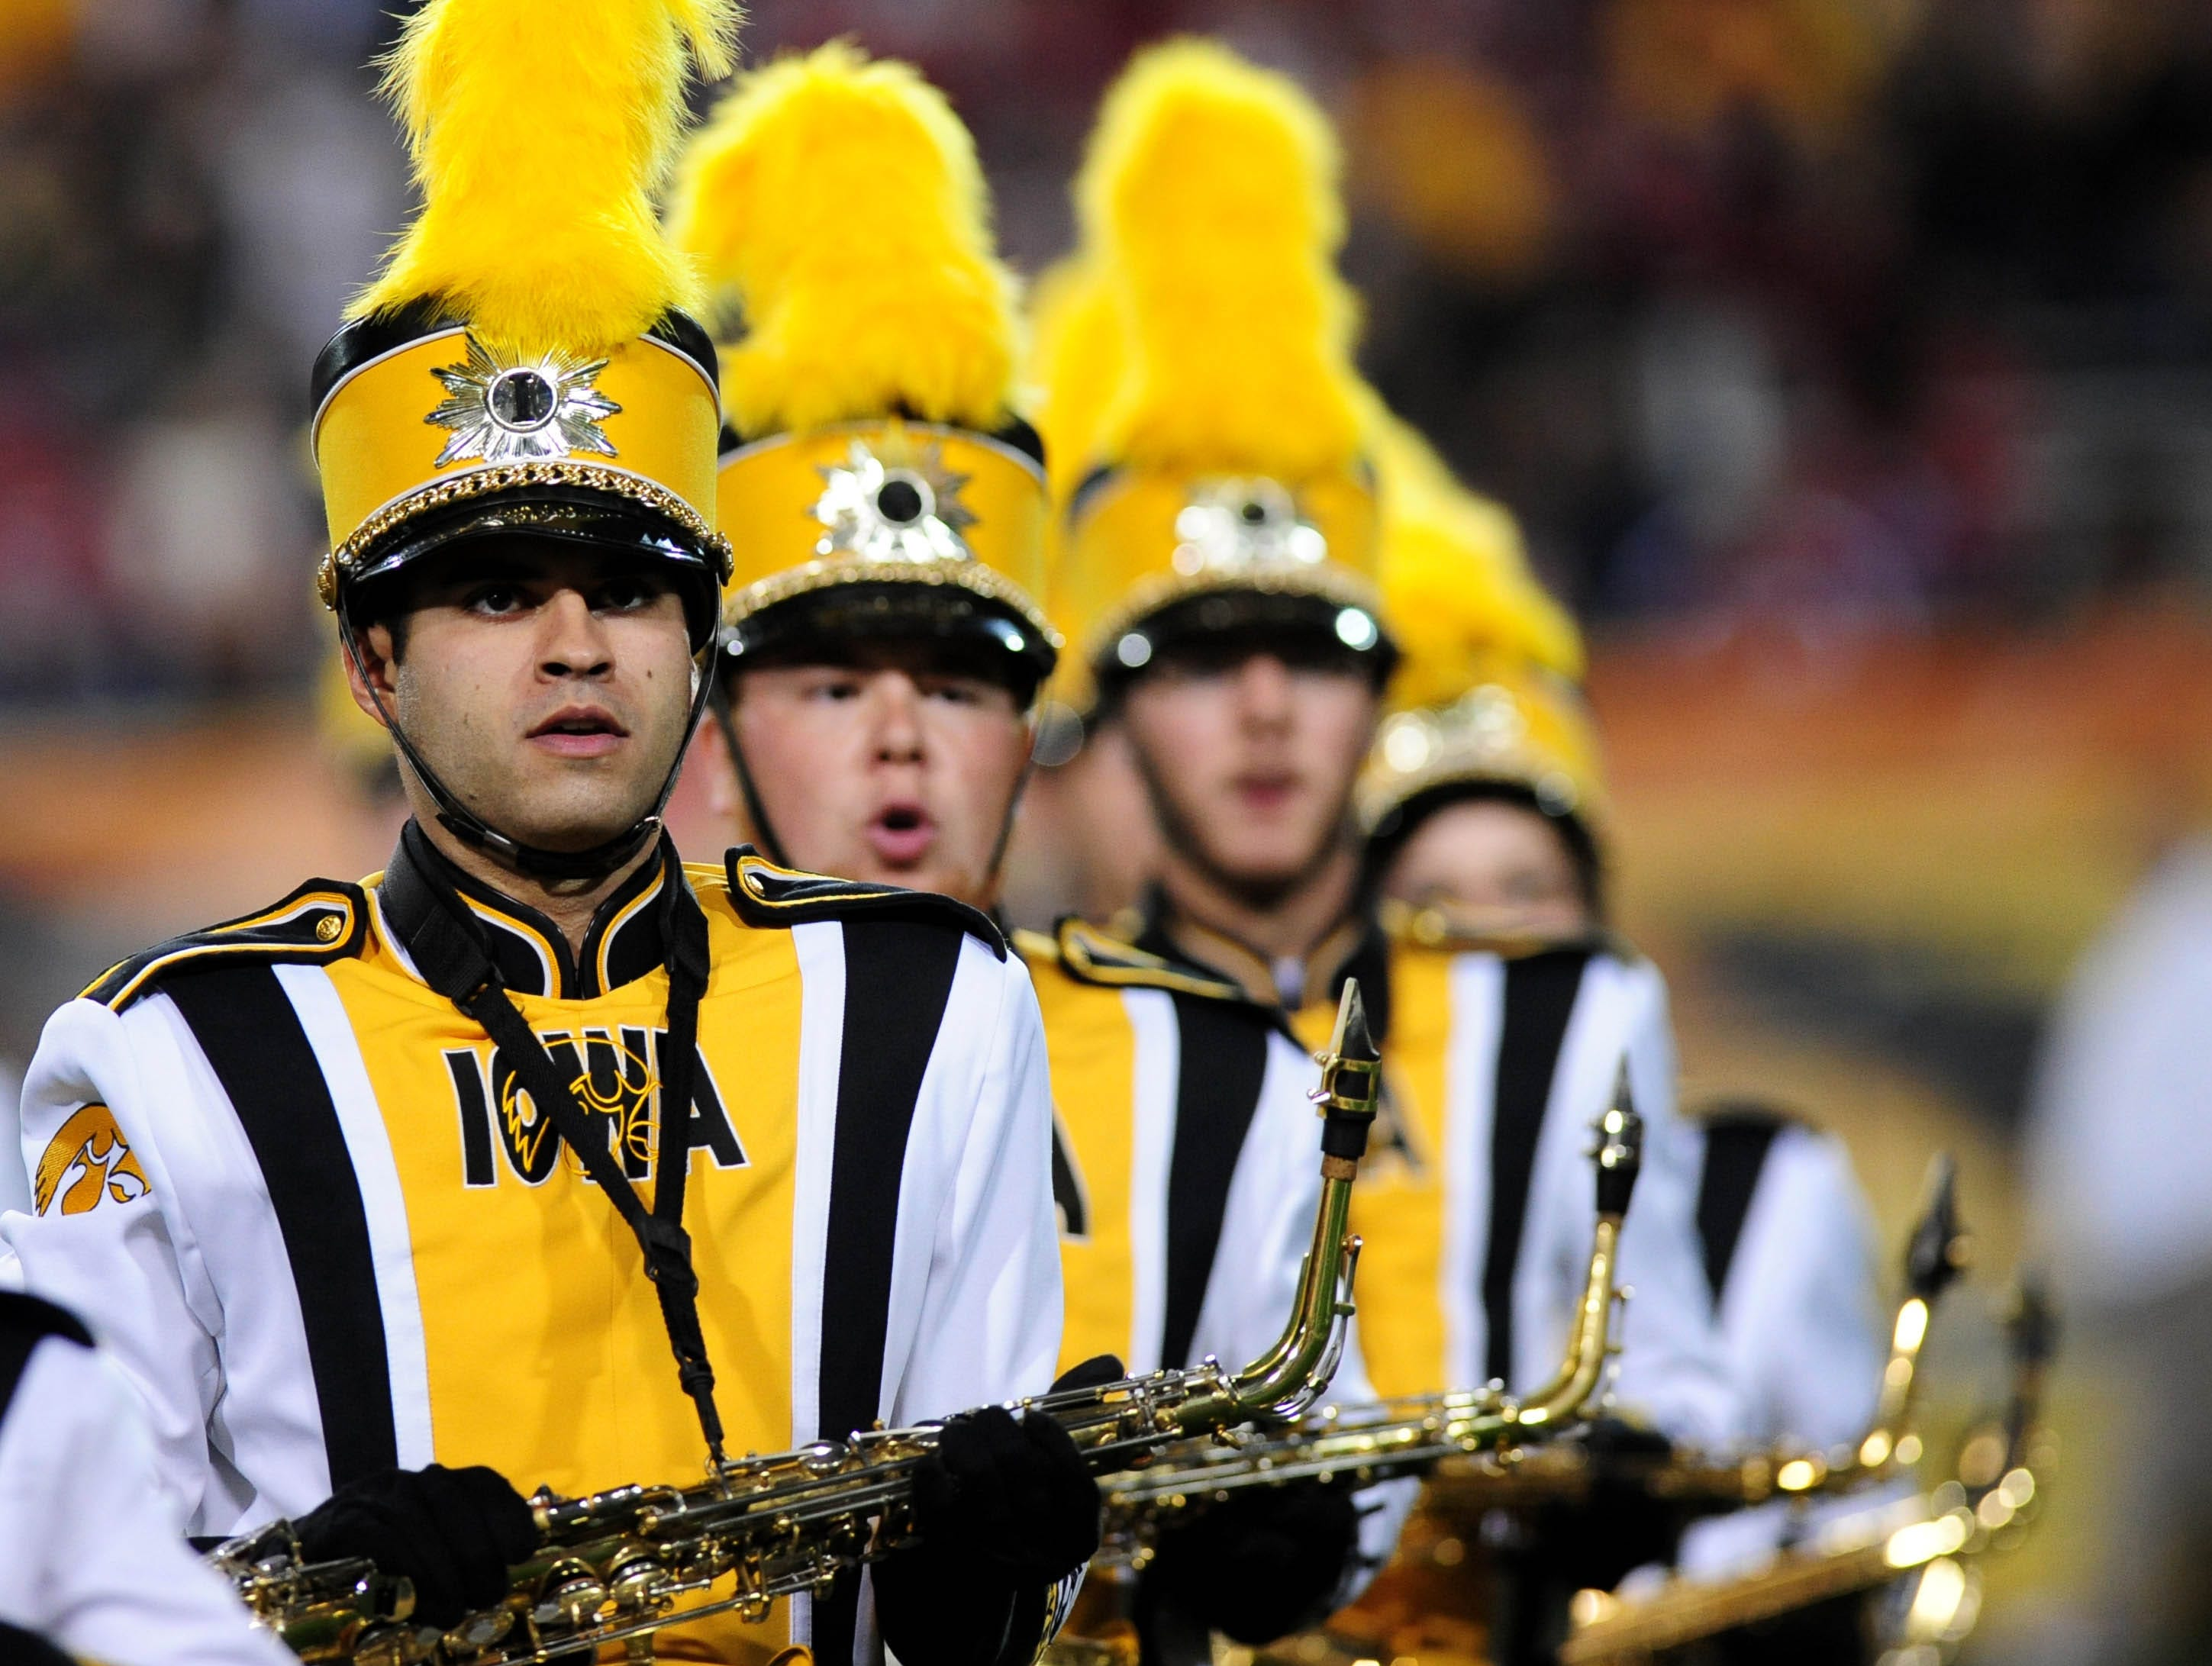 Dec 30, 2011; Tempe, AZ, USA;  Iowa Hawkeyes marching band preforms before the game against Oklahoma Sooners during the 2011 Insight Bowl at the Sun Devil Stadium. Mandatory Credit: Jennifer Hilderbrand-USA TODAY Sports